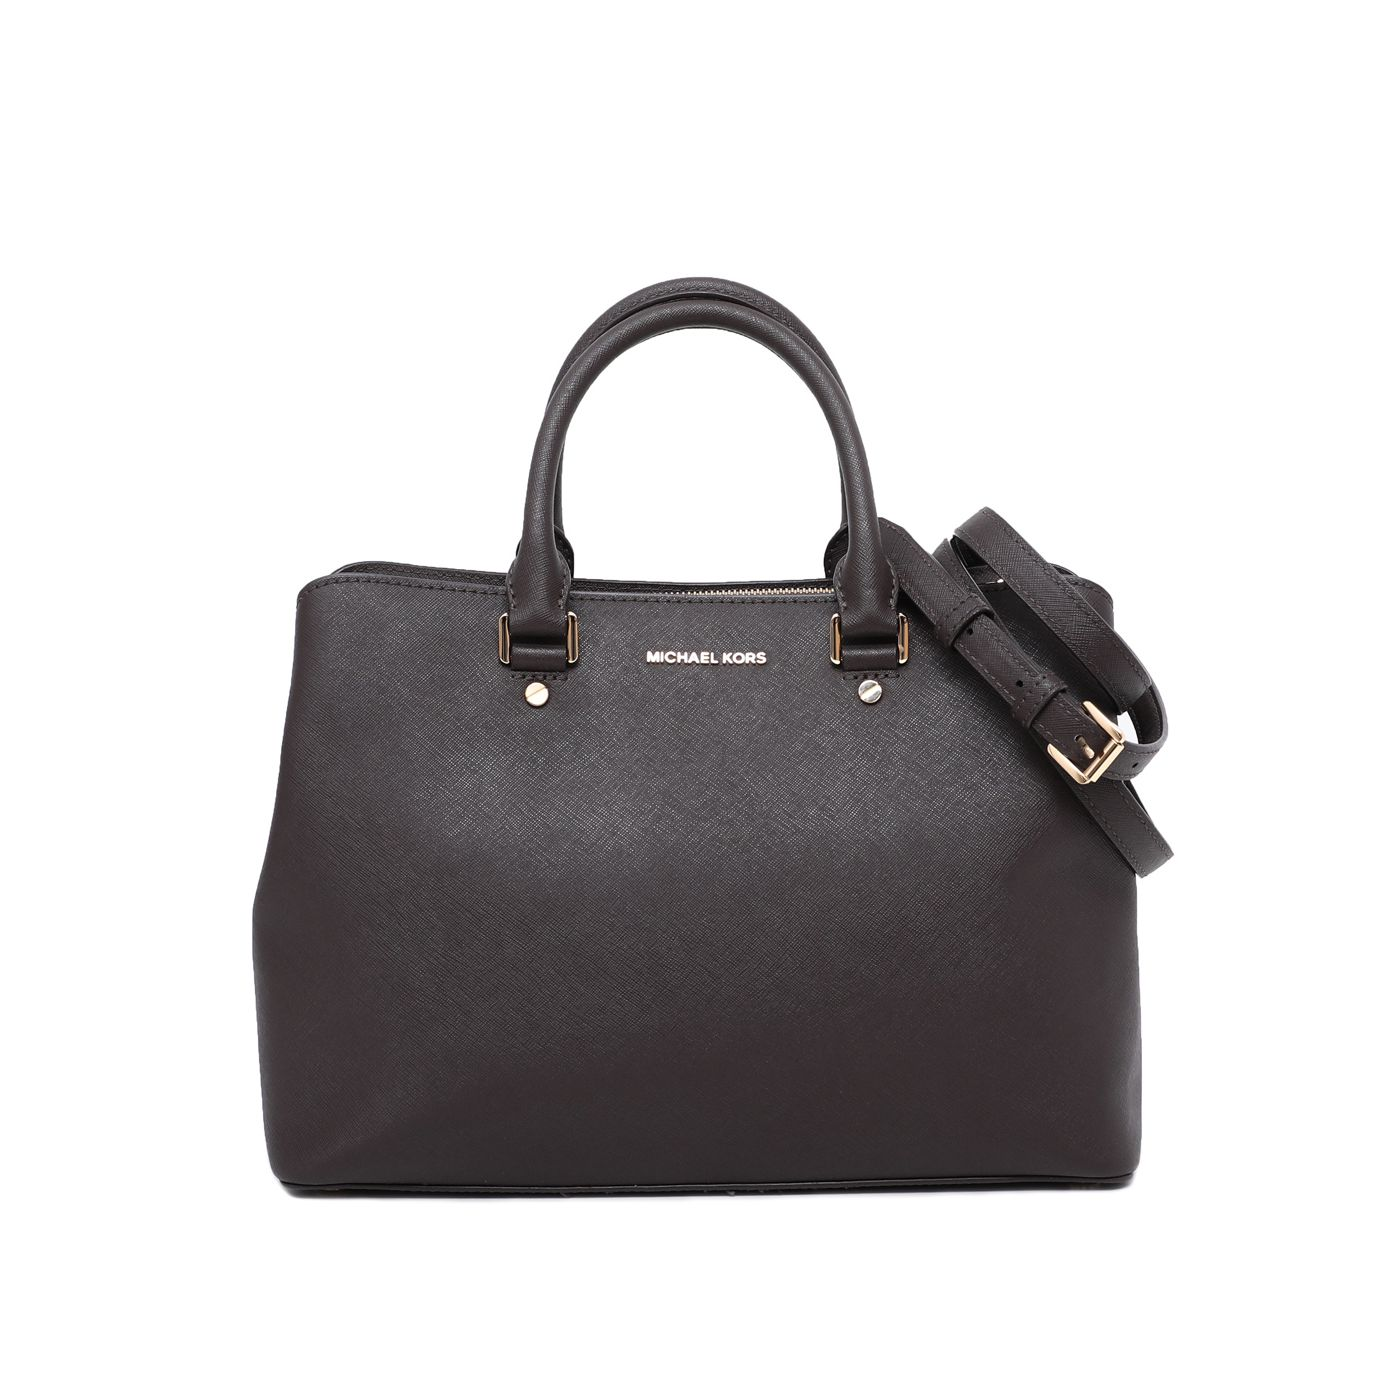 Michel kors Dark Brown Savannah Satchel Tote Bag